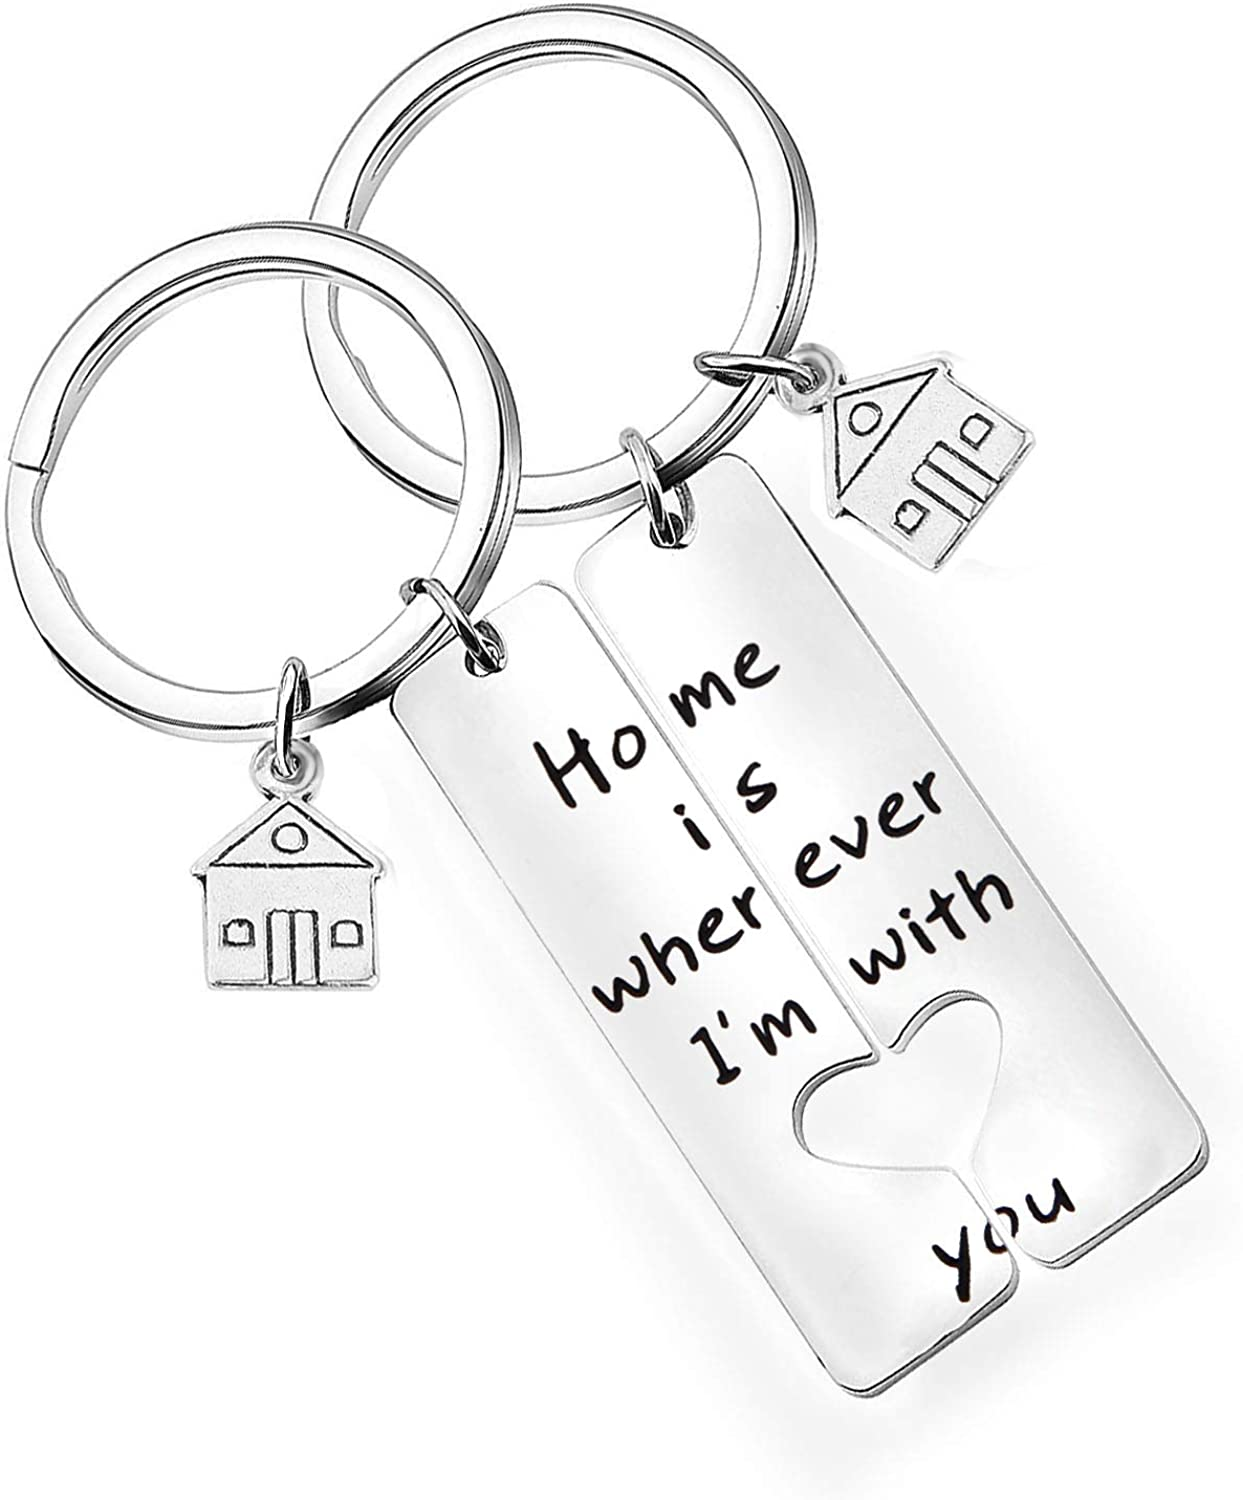 Great idea as lucky pursebag charm for housewarming gift A little house shape keychain in real genuine saffiano leather Home sweet home.